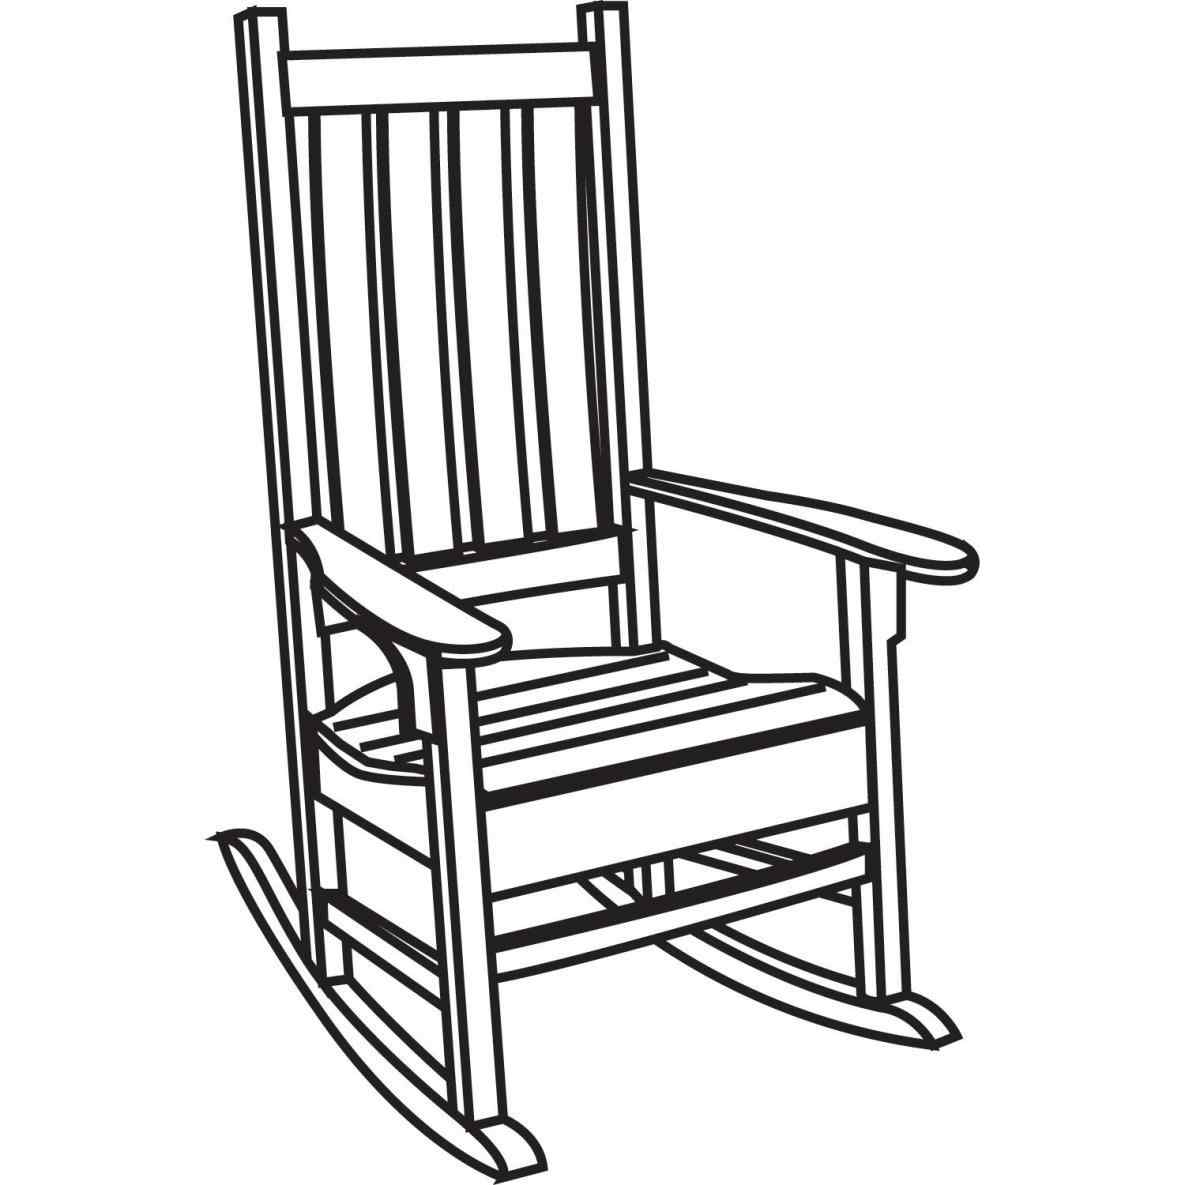 drawing of a chair chair drawing furniture coloring book png 1370x2400px drawing of chair a